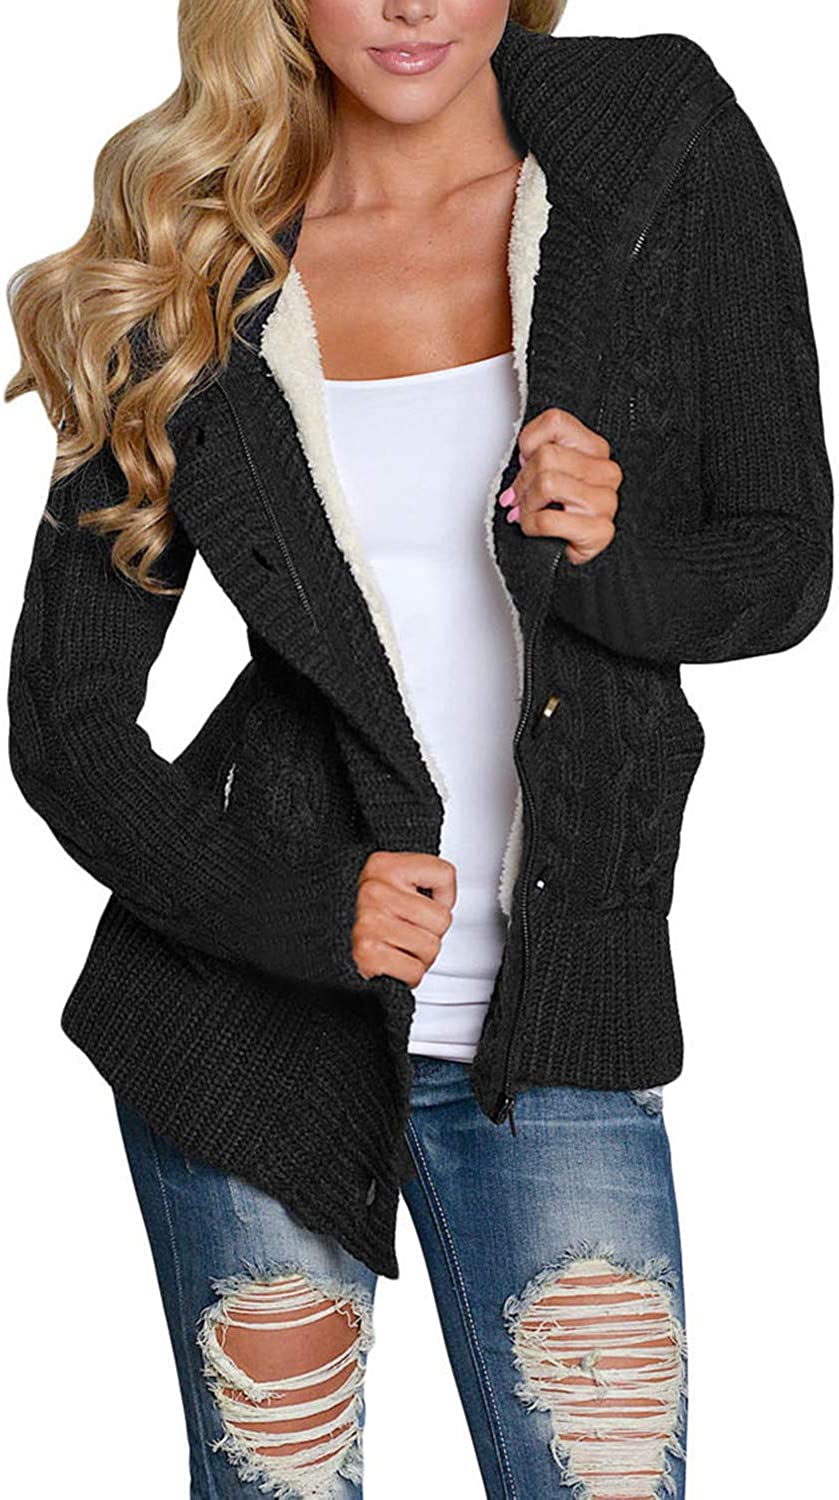 GOSOPIN Womens Winter Warm Cable Knitted Outwear Button up Hooded Cardigans Fleece Sweater Jackets Coat S XXL